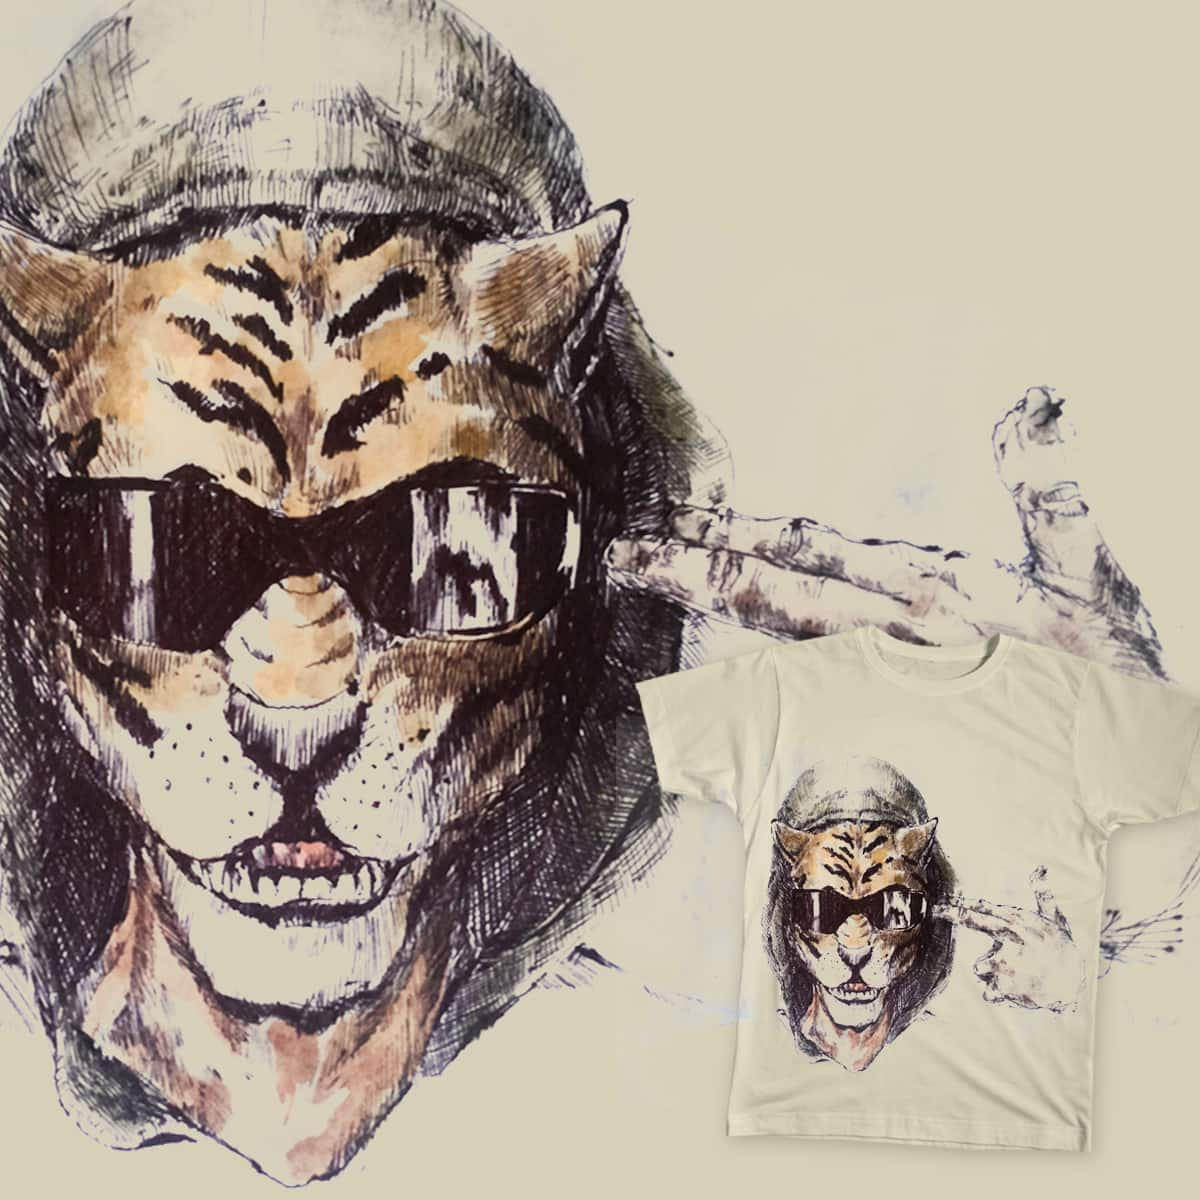 we are all animals by decun.devin on Threadless